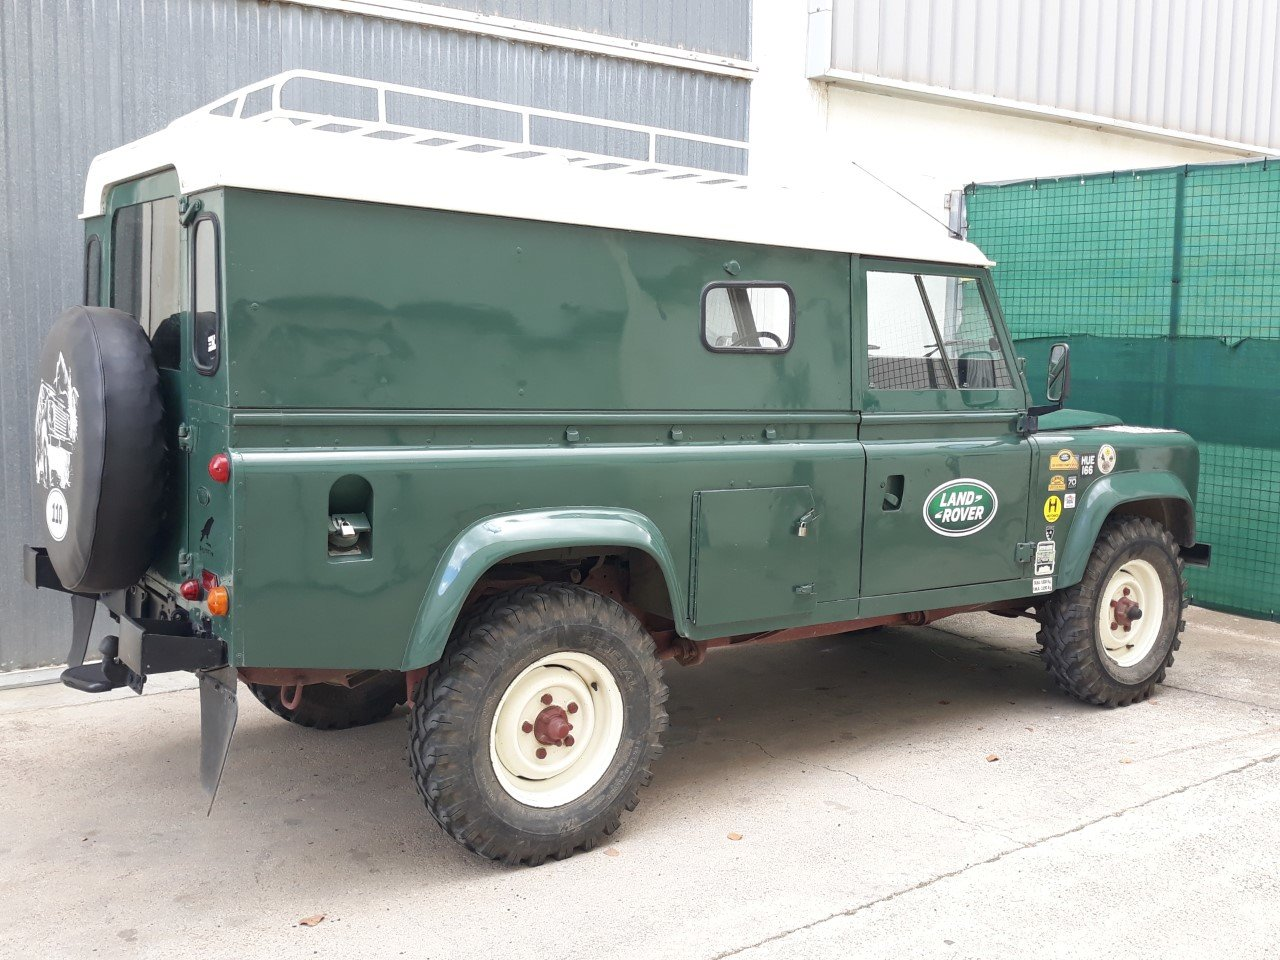 1983 LHD Land Rover Defender 110 Military, super-diesel For Sale (picture 2 of 6)